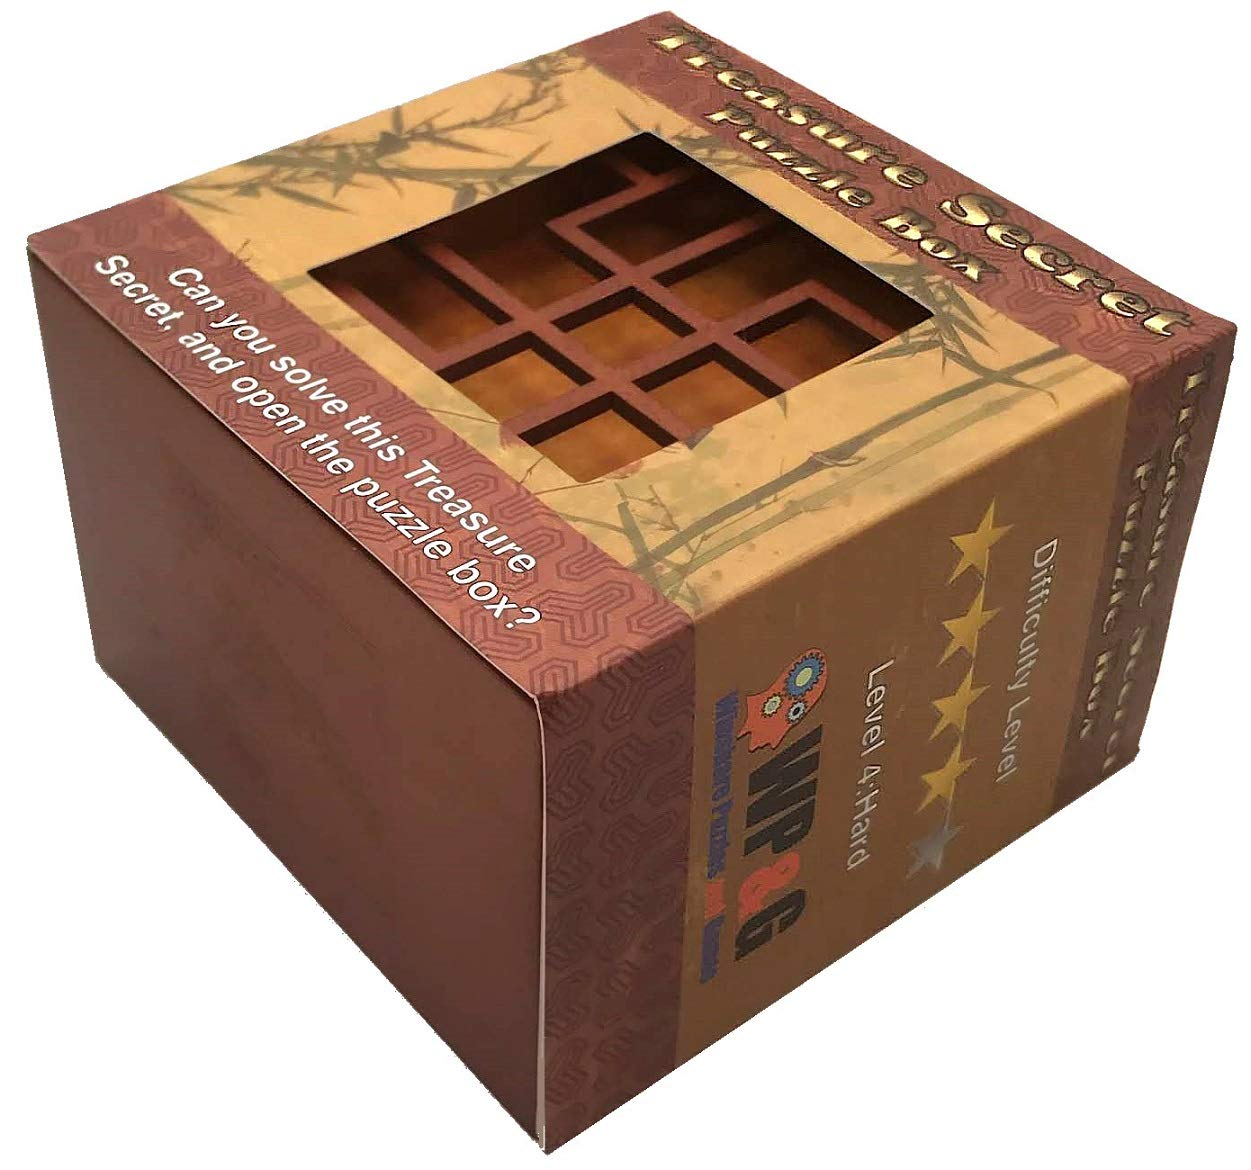 Treasure Secret Puzzle Box Money And Gift Card Holder In A Wood